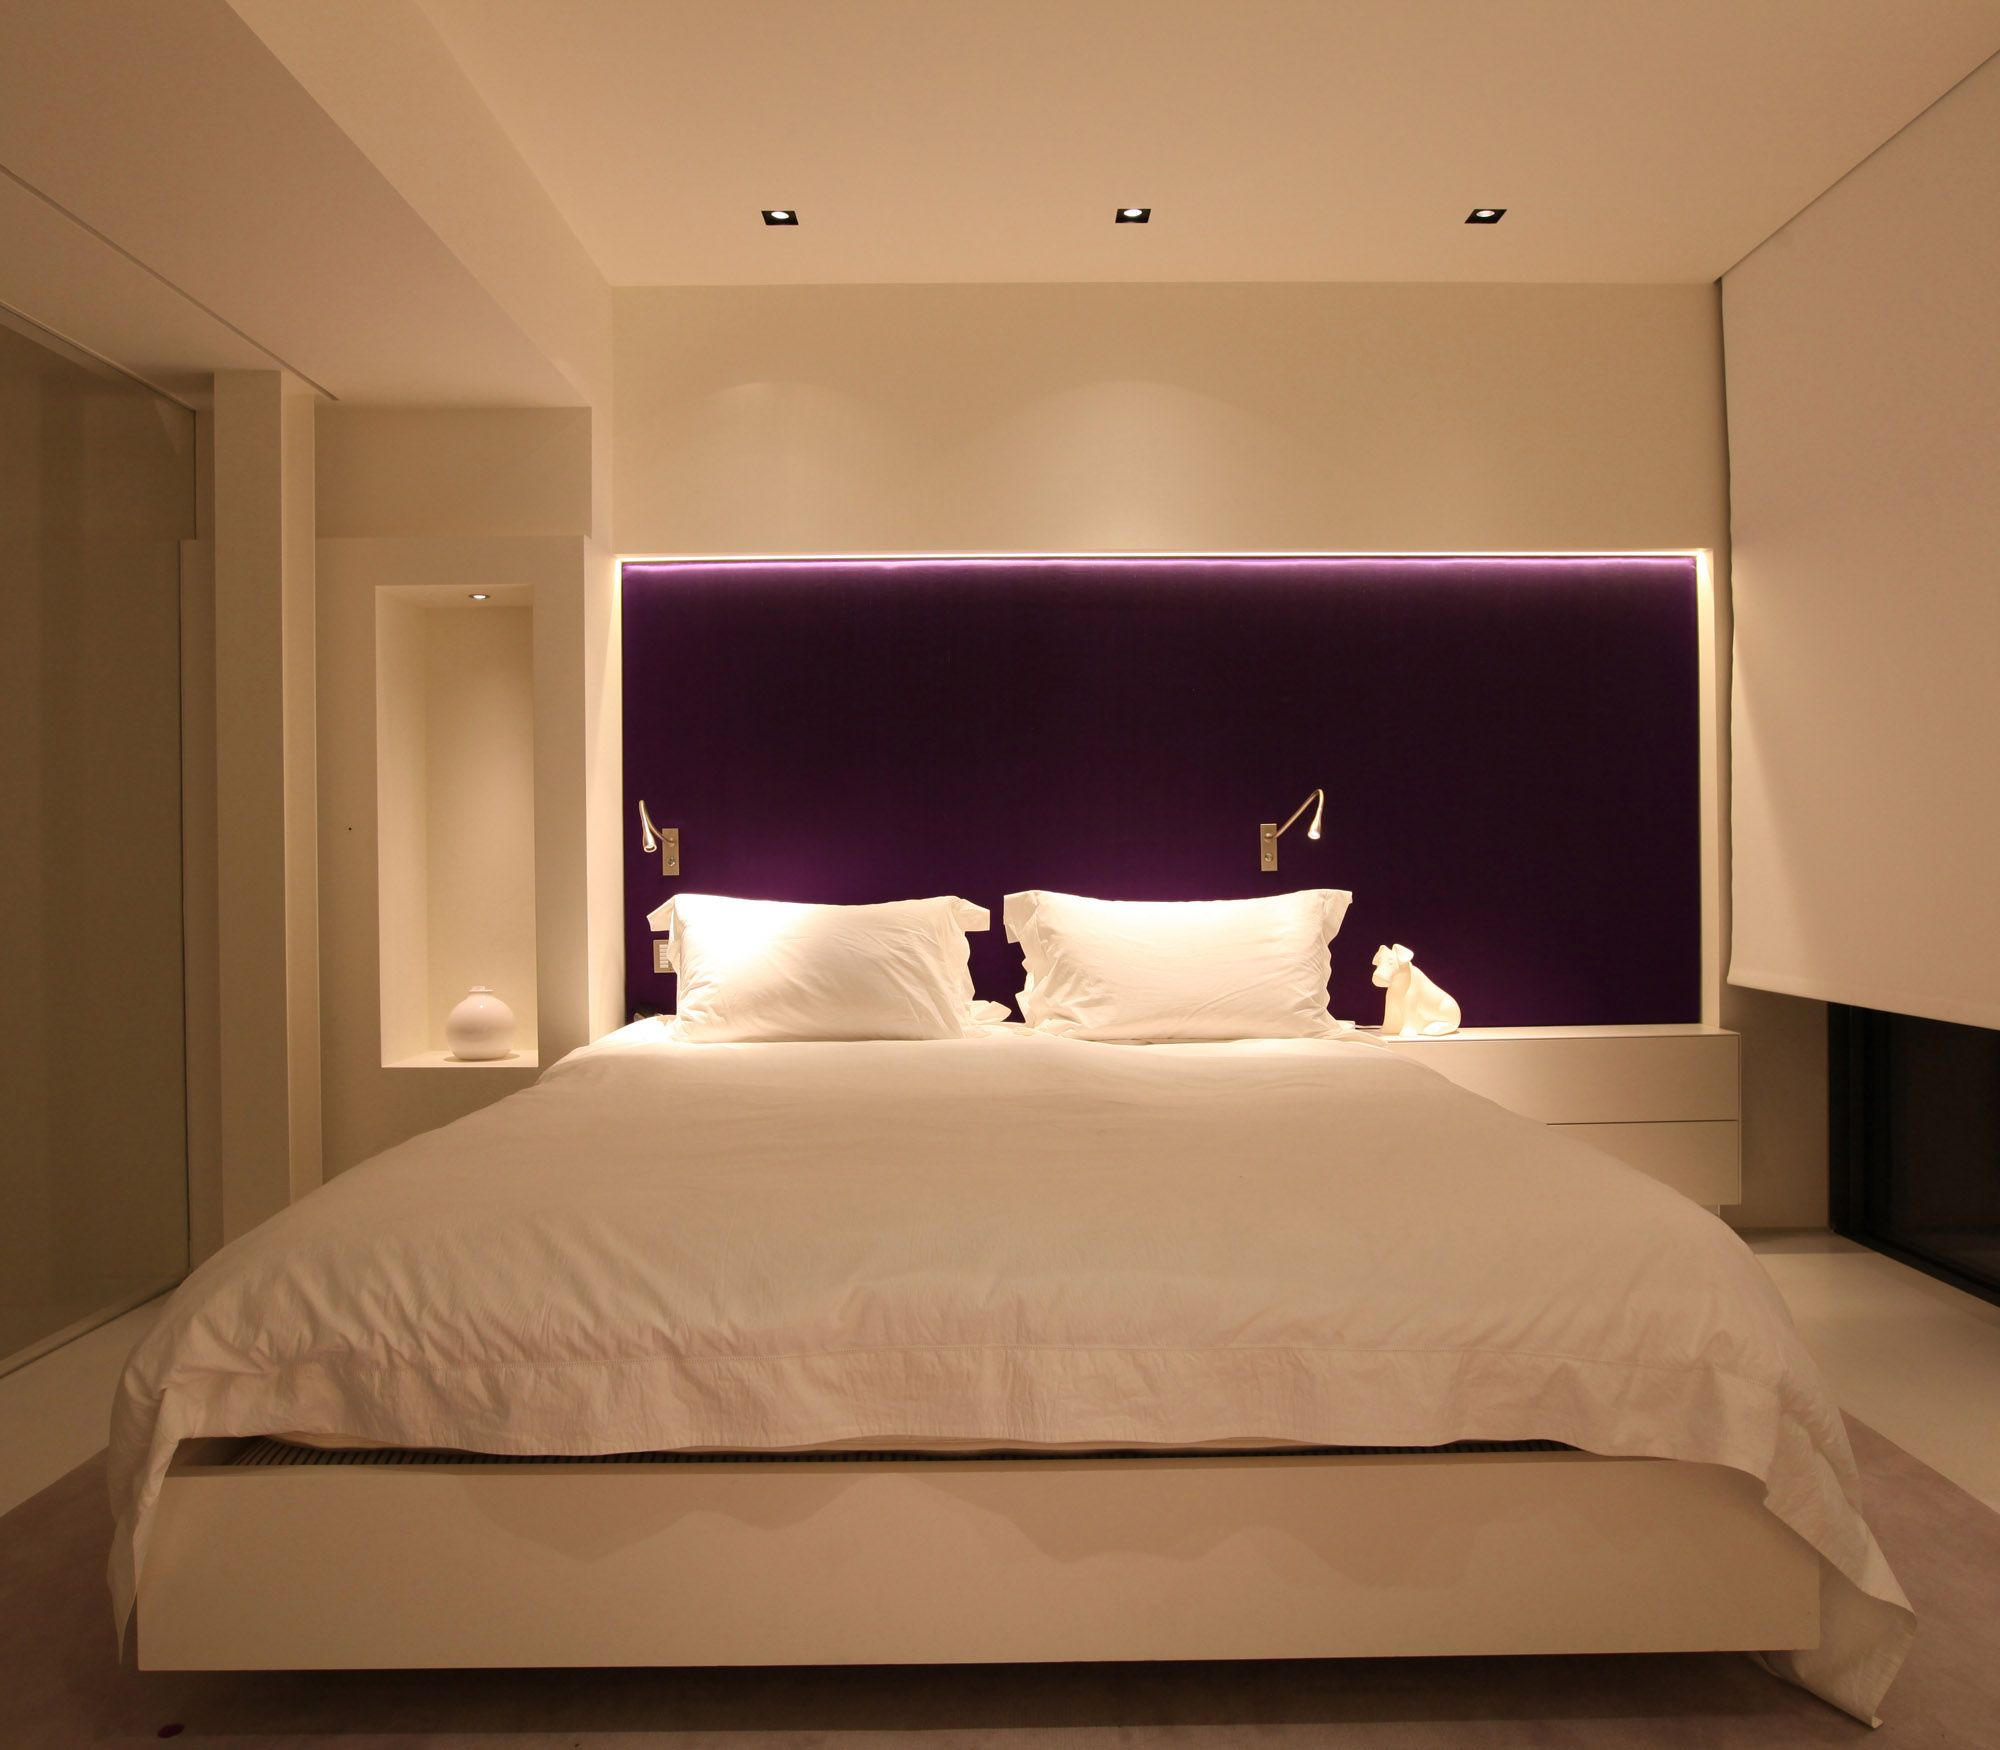 Bedroom Mood Lighting (11)